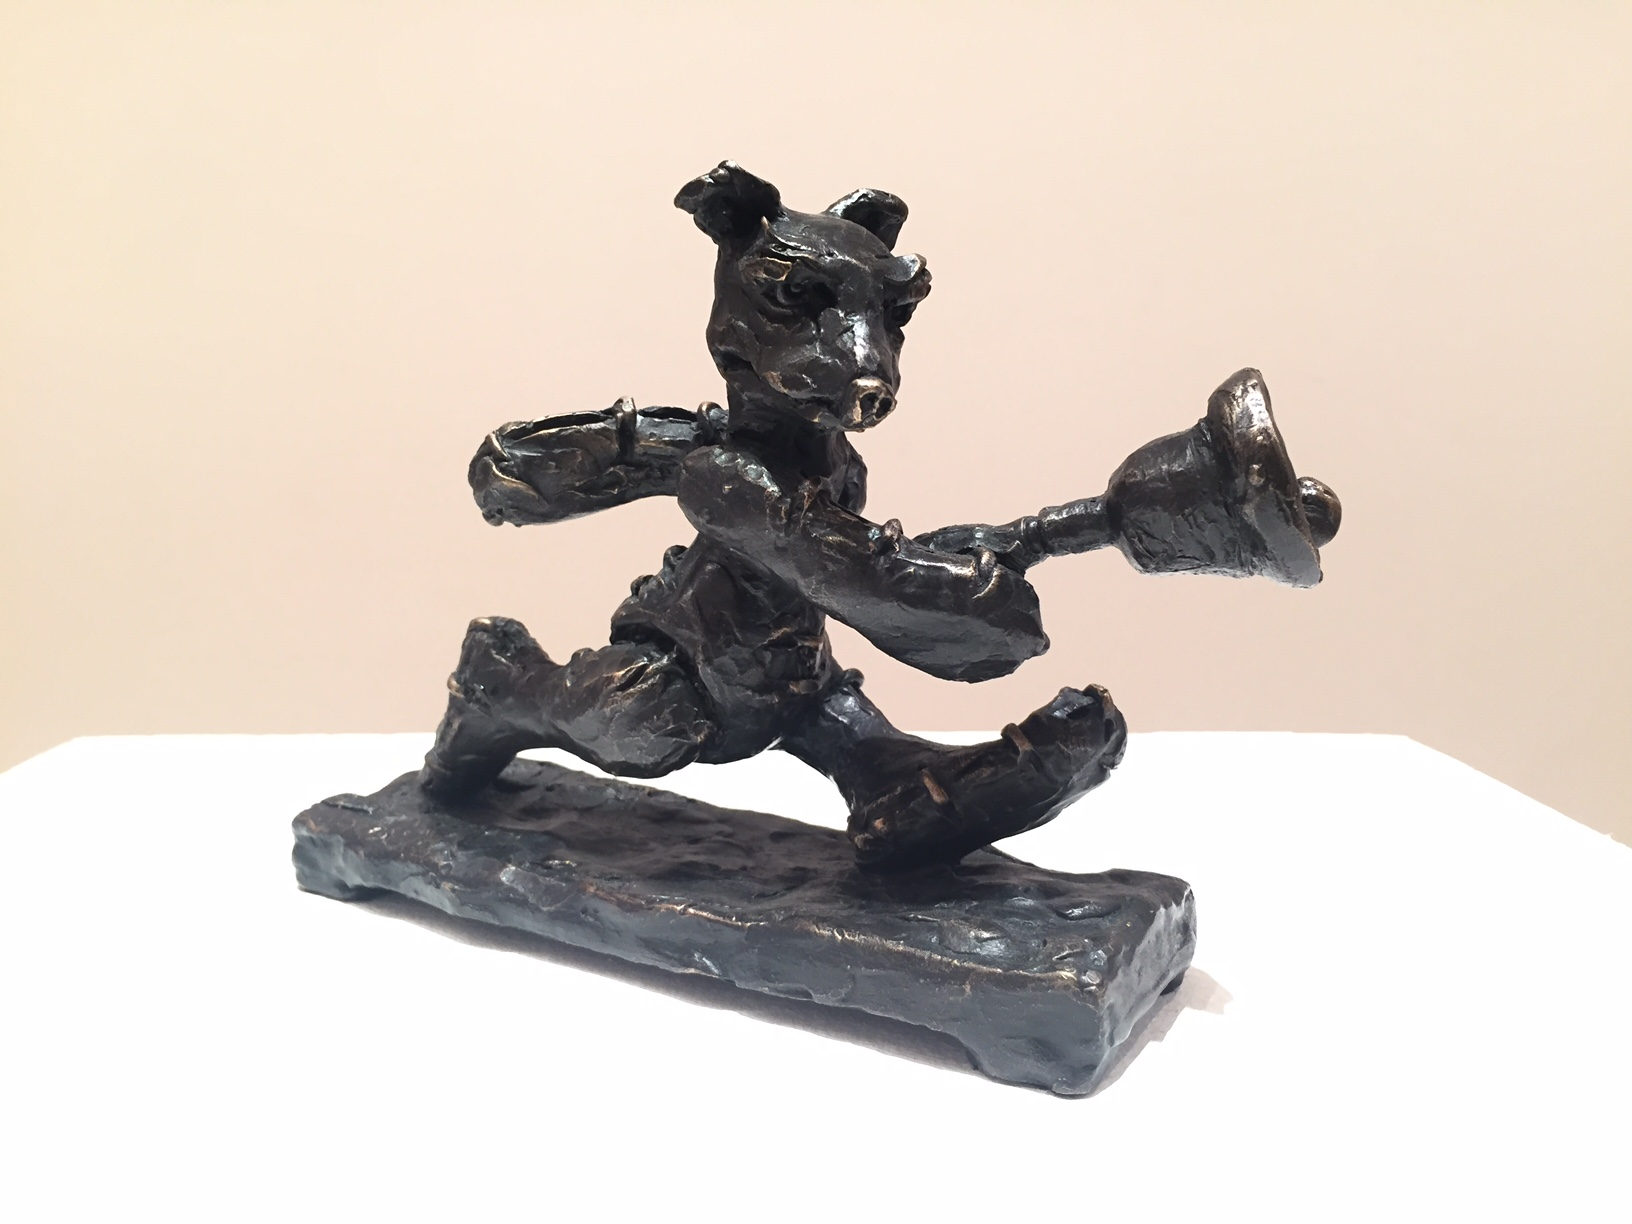 Patrick O'Reilly, Customised Little Bear (Bell), bronze, 13 x 16 x 5cm